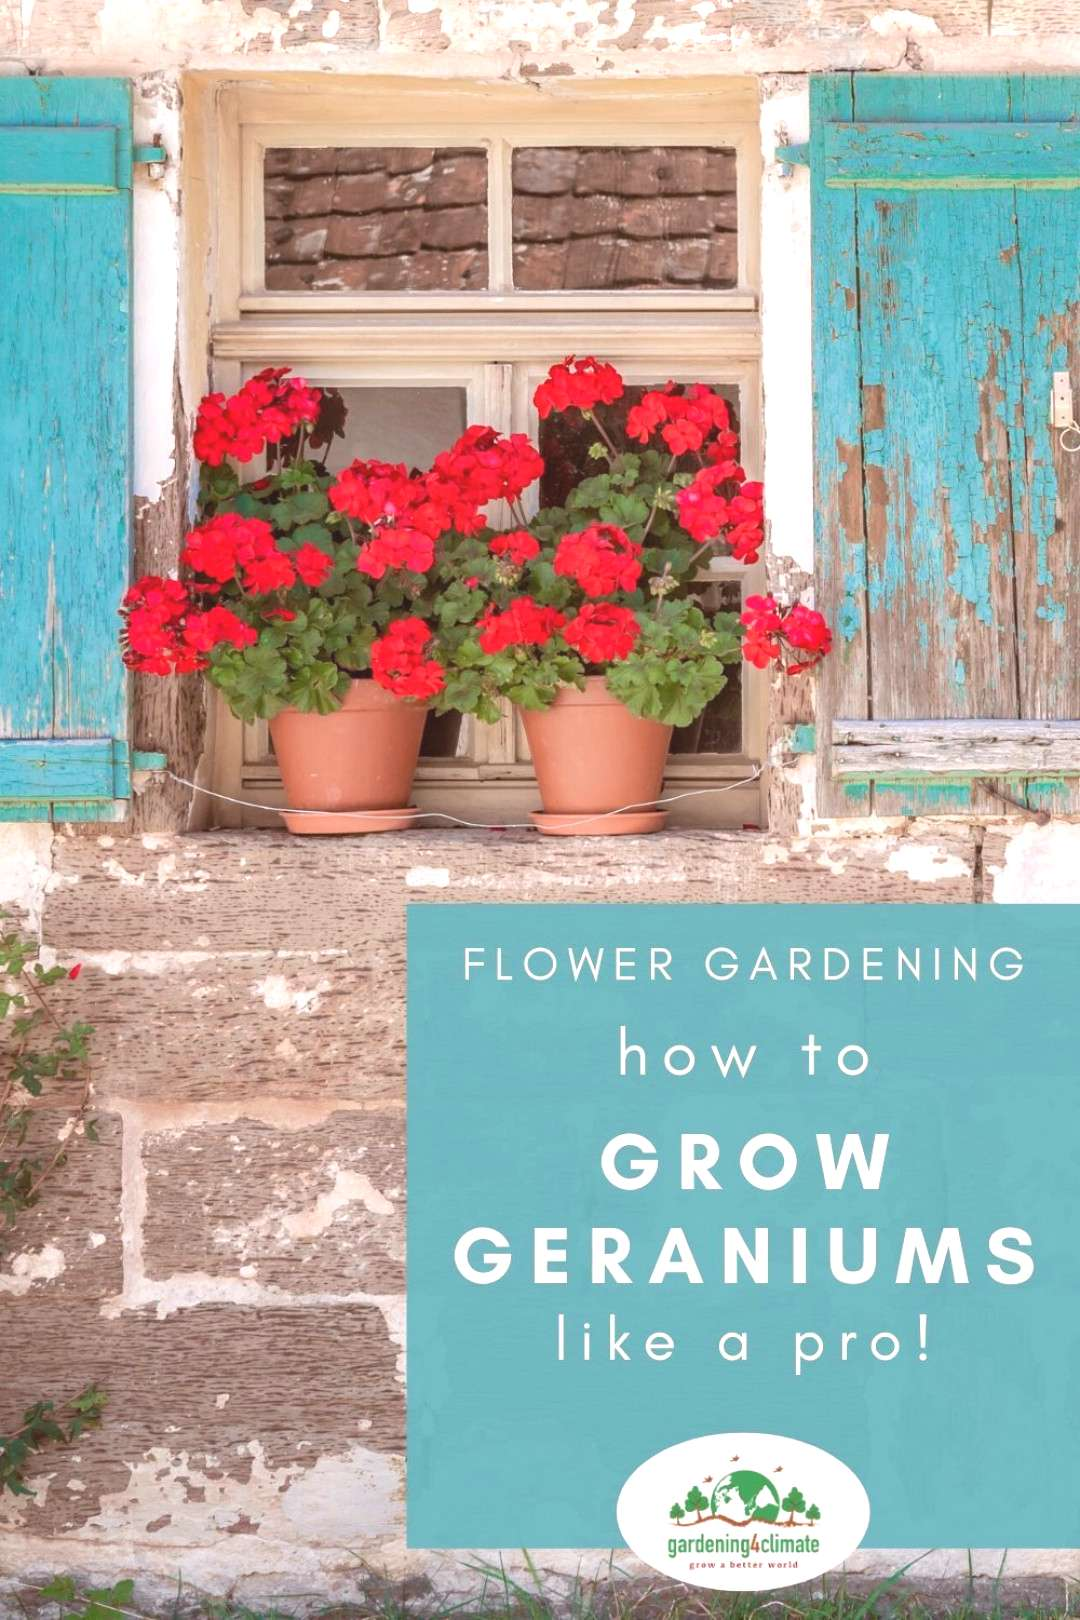 Growing Geraniums - Learn how to keep them flowering all summer! Keeping your Geraniums flowering a